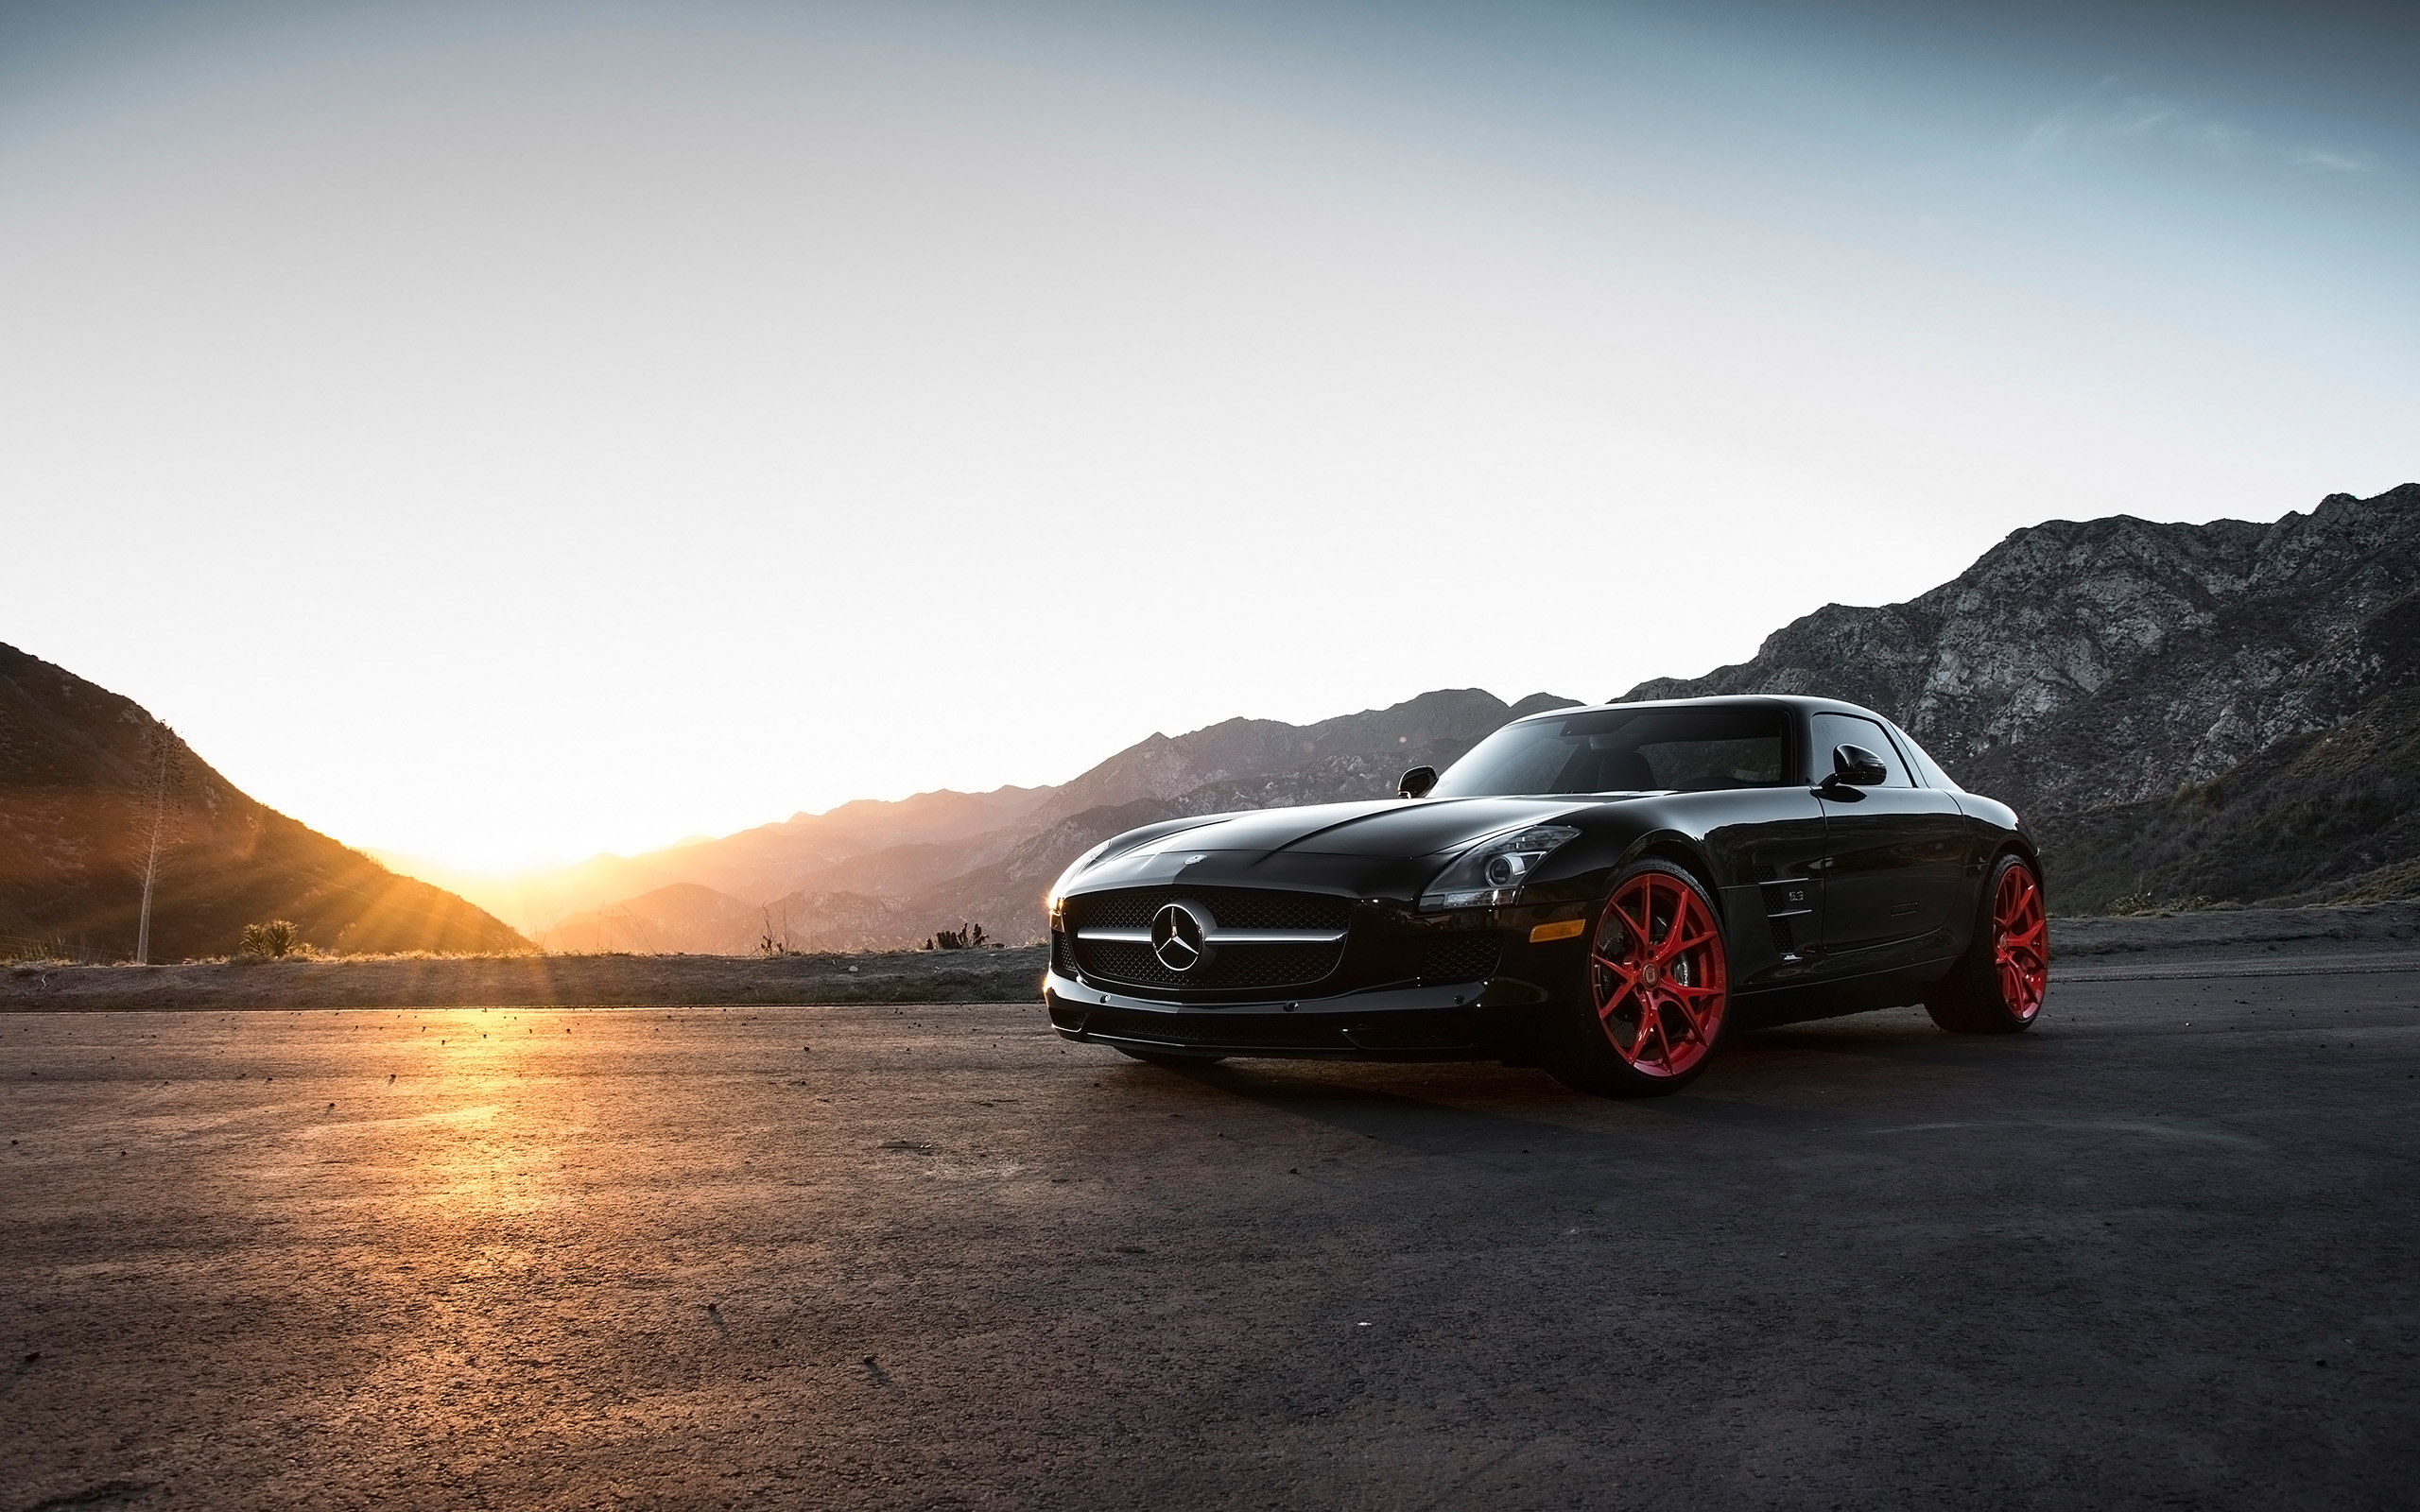 2015 klassen mercedes benz sls amg wallpaper hd car wallpapers. Black Bedroom Furniture Sets. Home Design Ideas